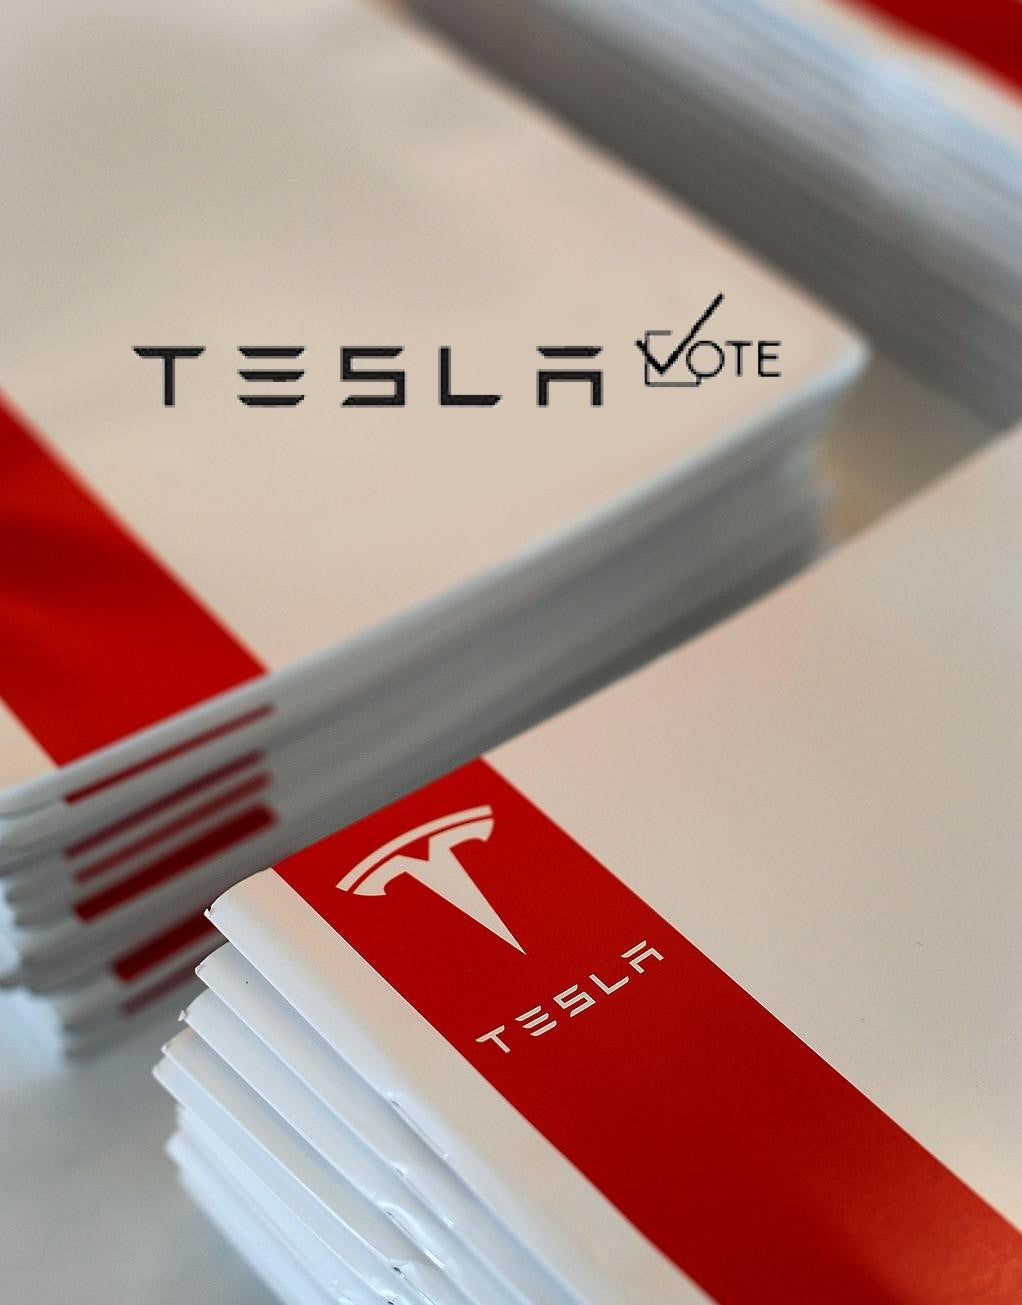 Tesla Shareholders Meeting 2020 On July 7